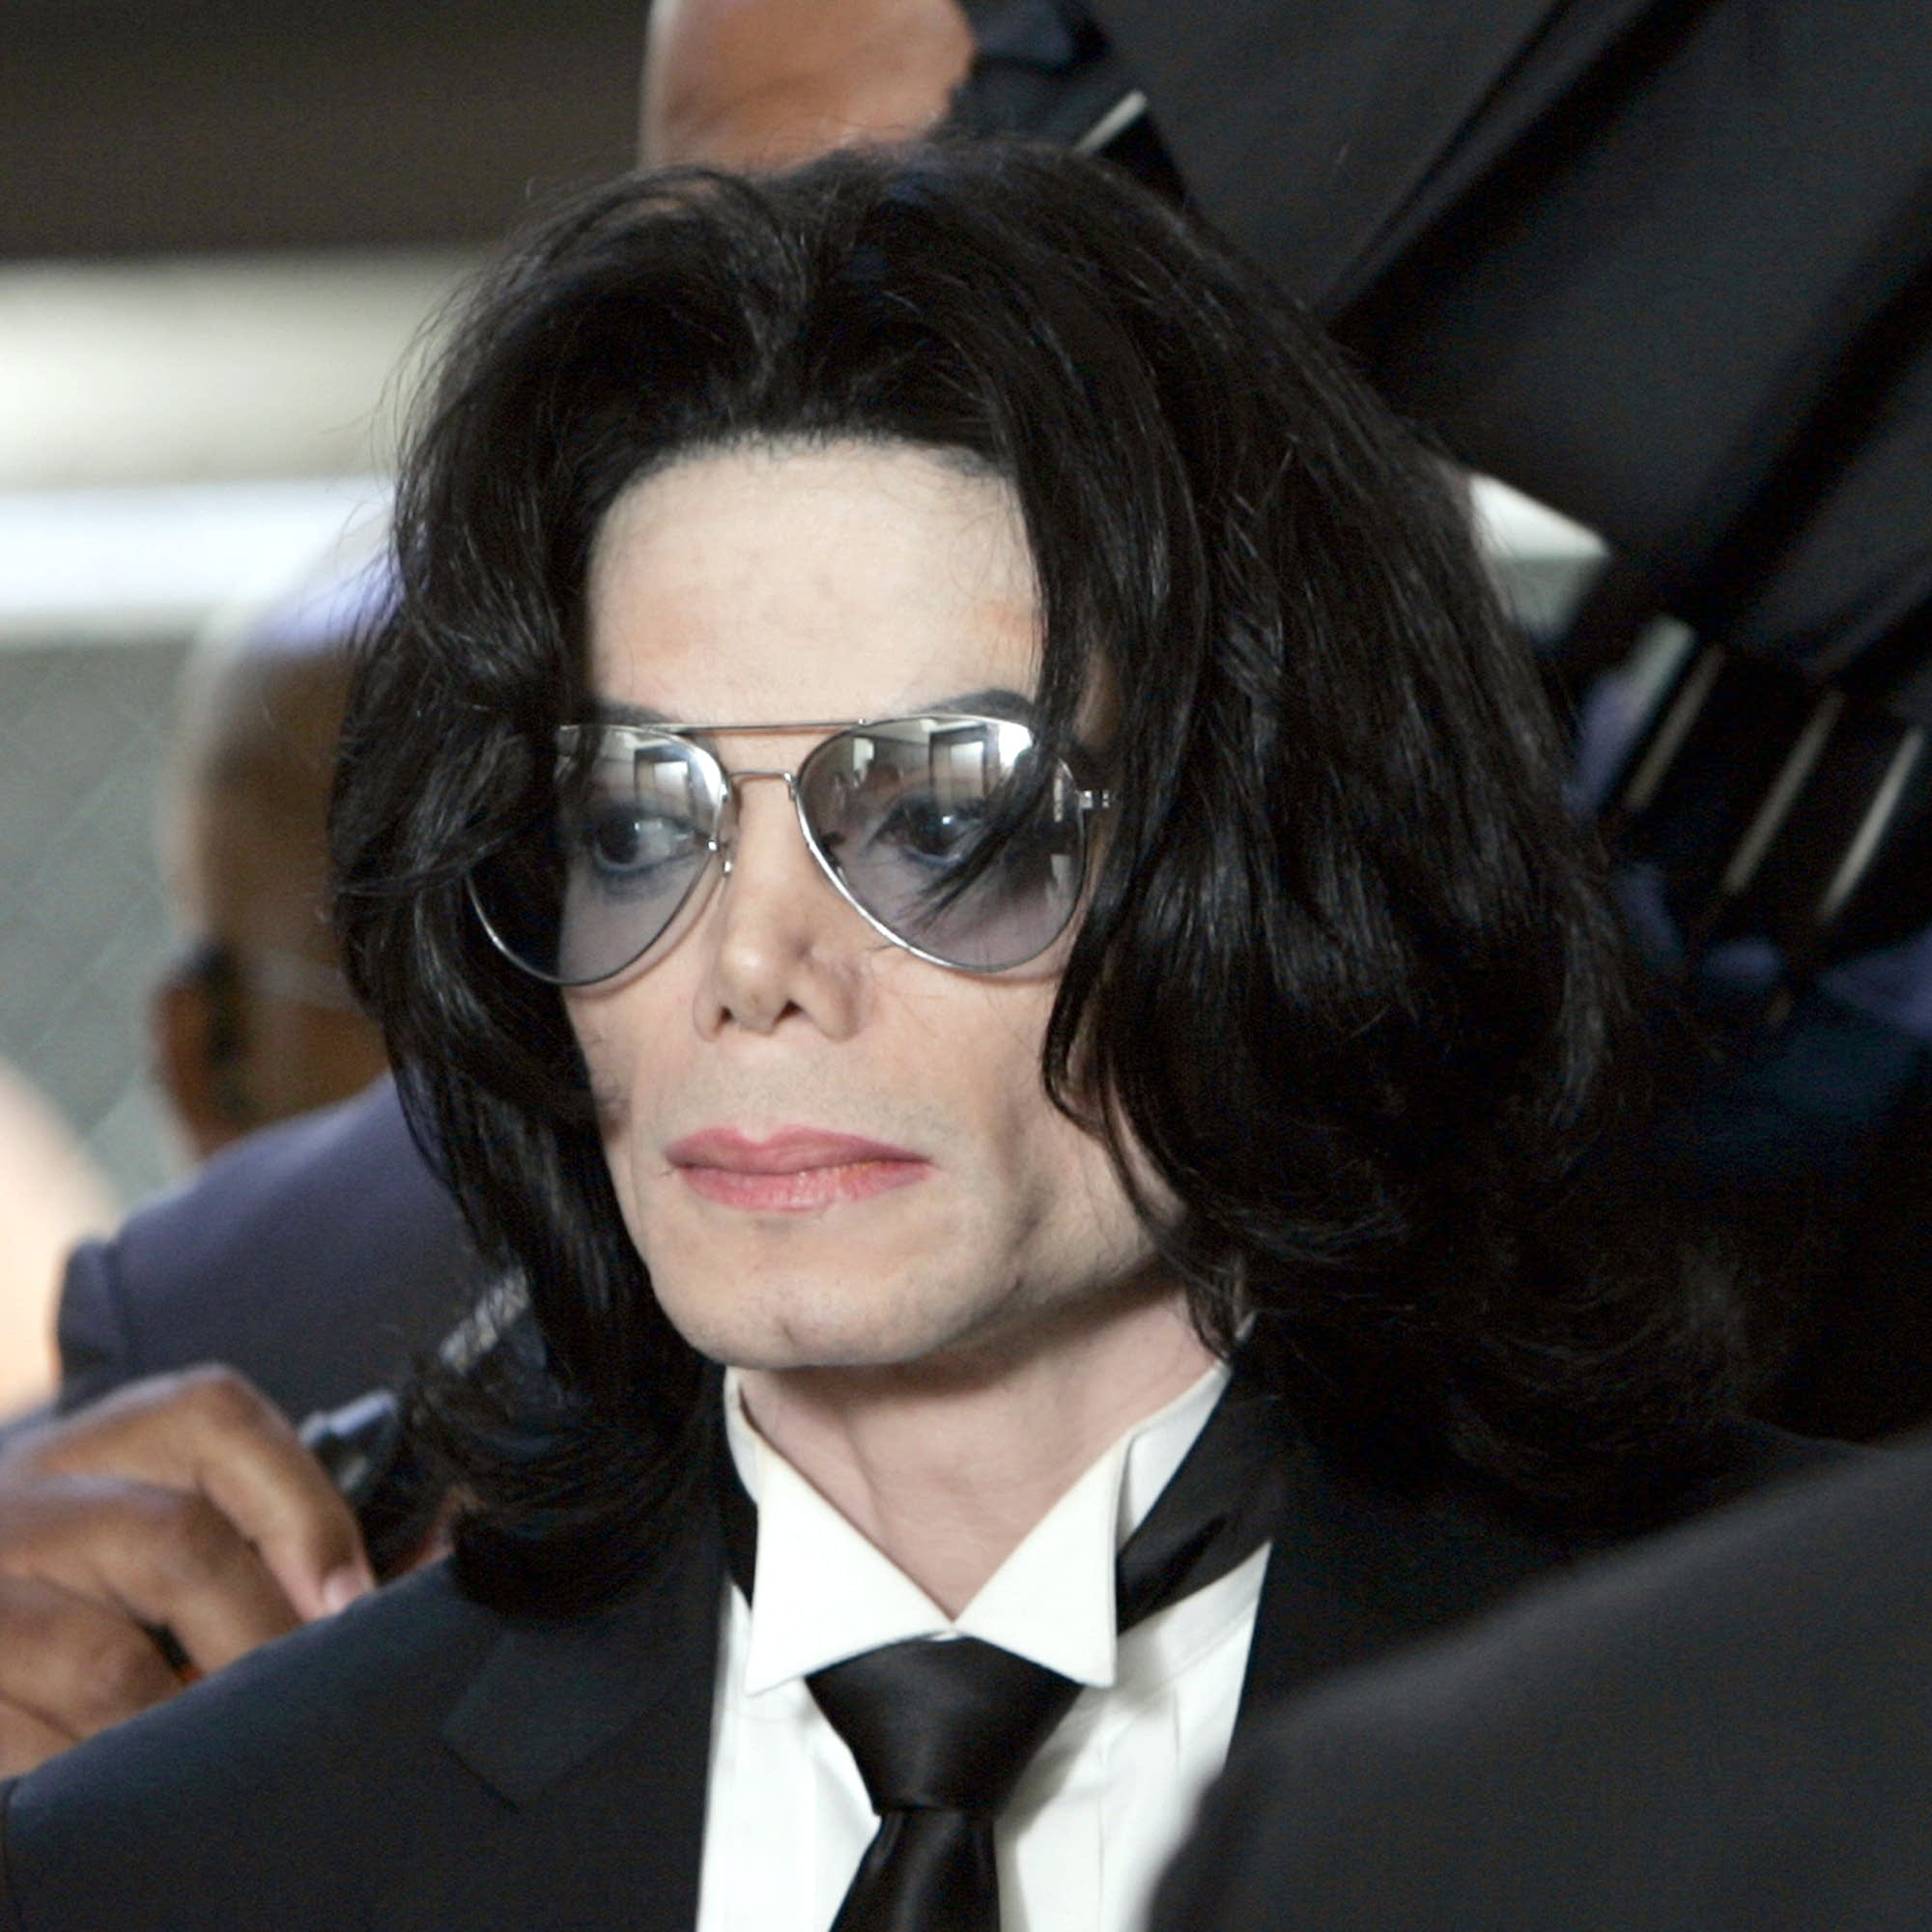 Michael Jackson arrives at court to hear the verdict of a 2005 trial.